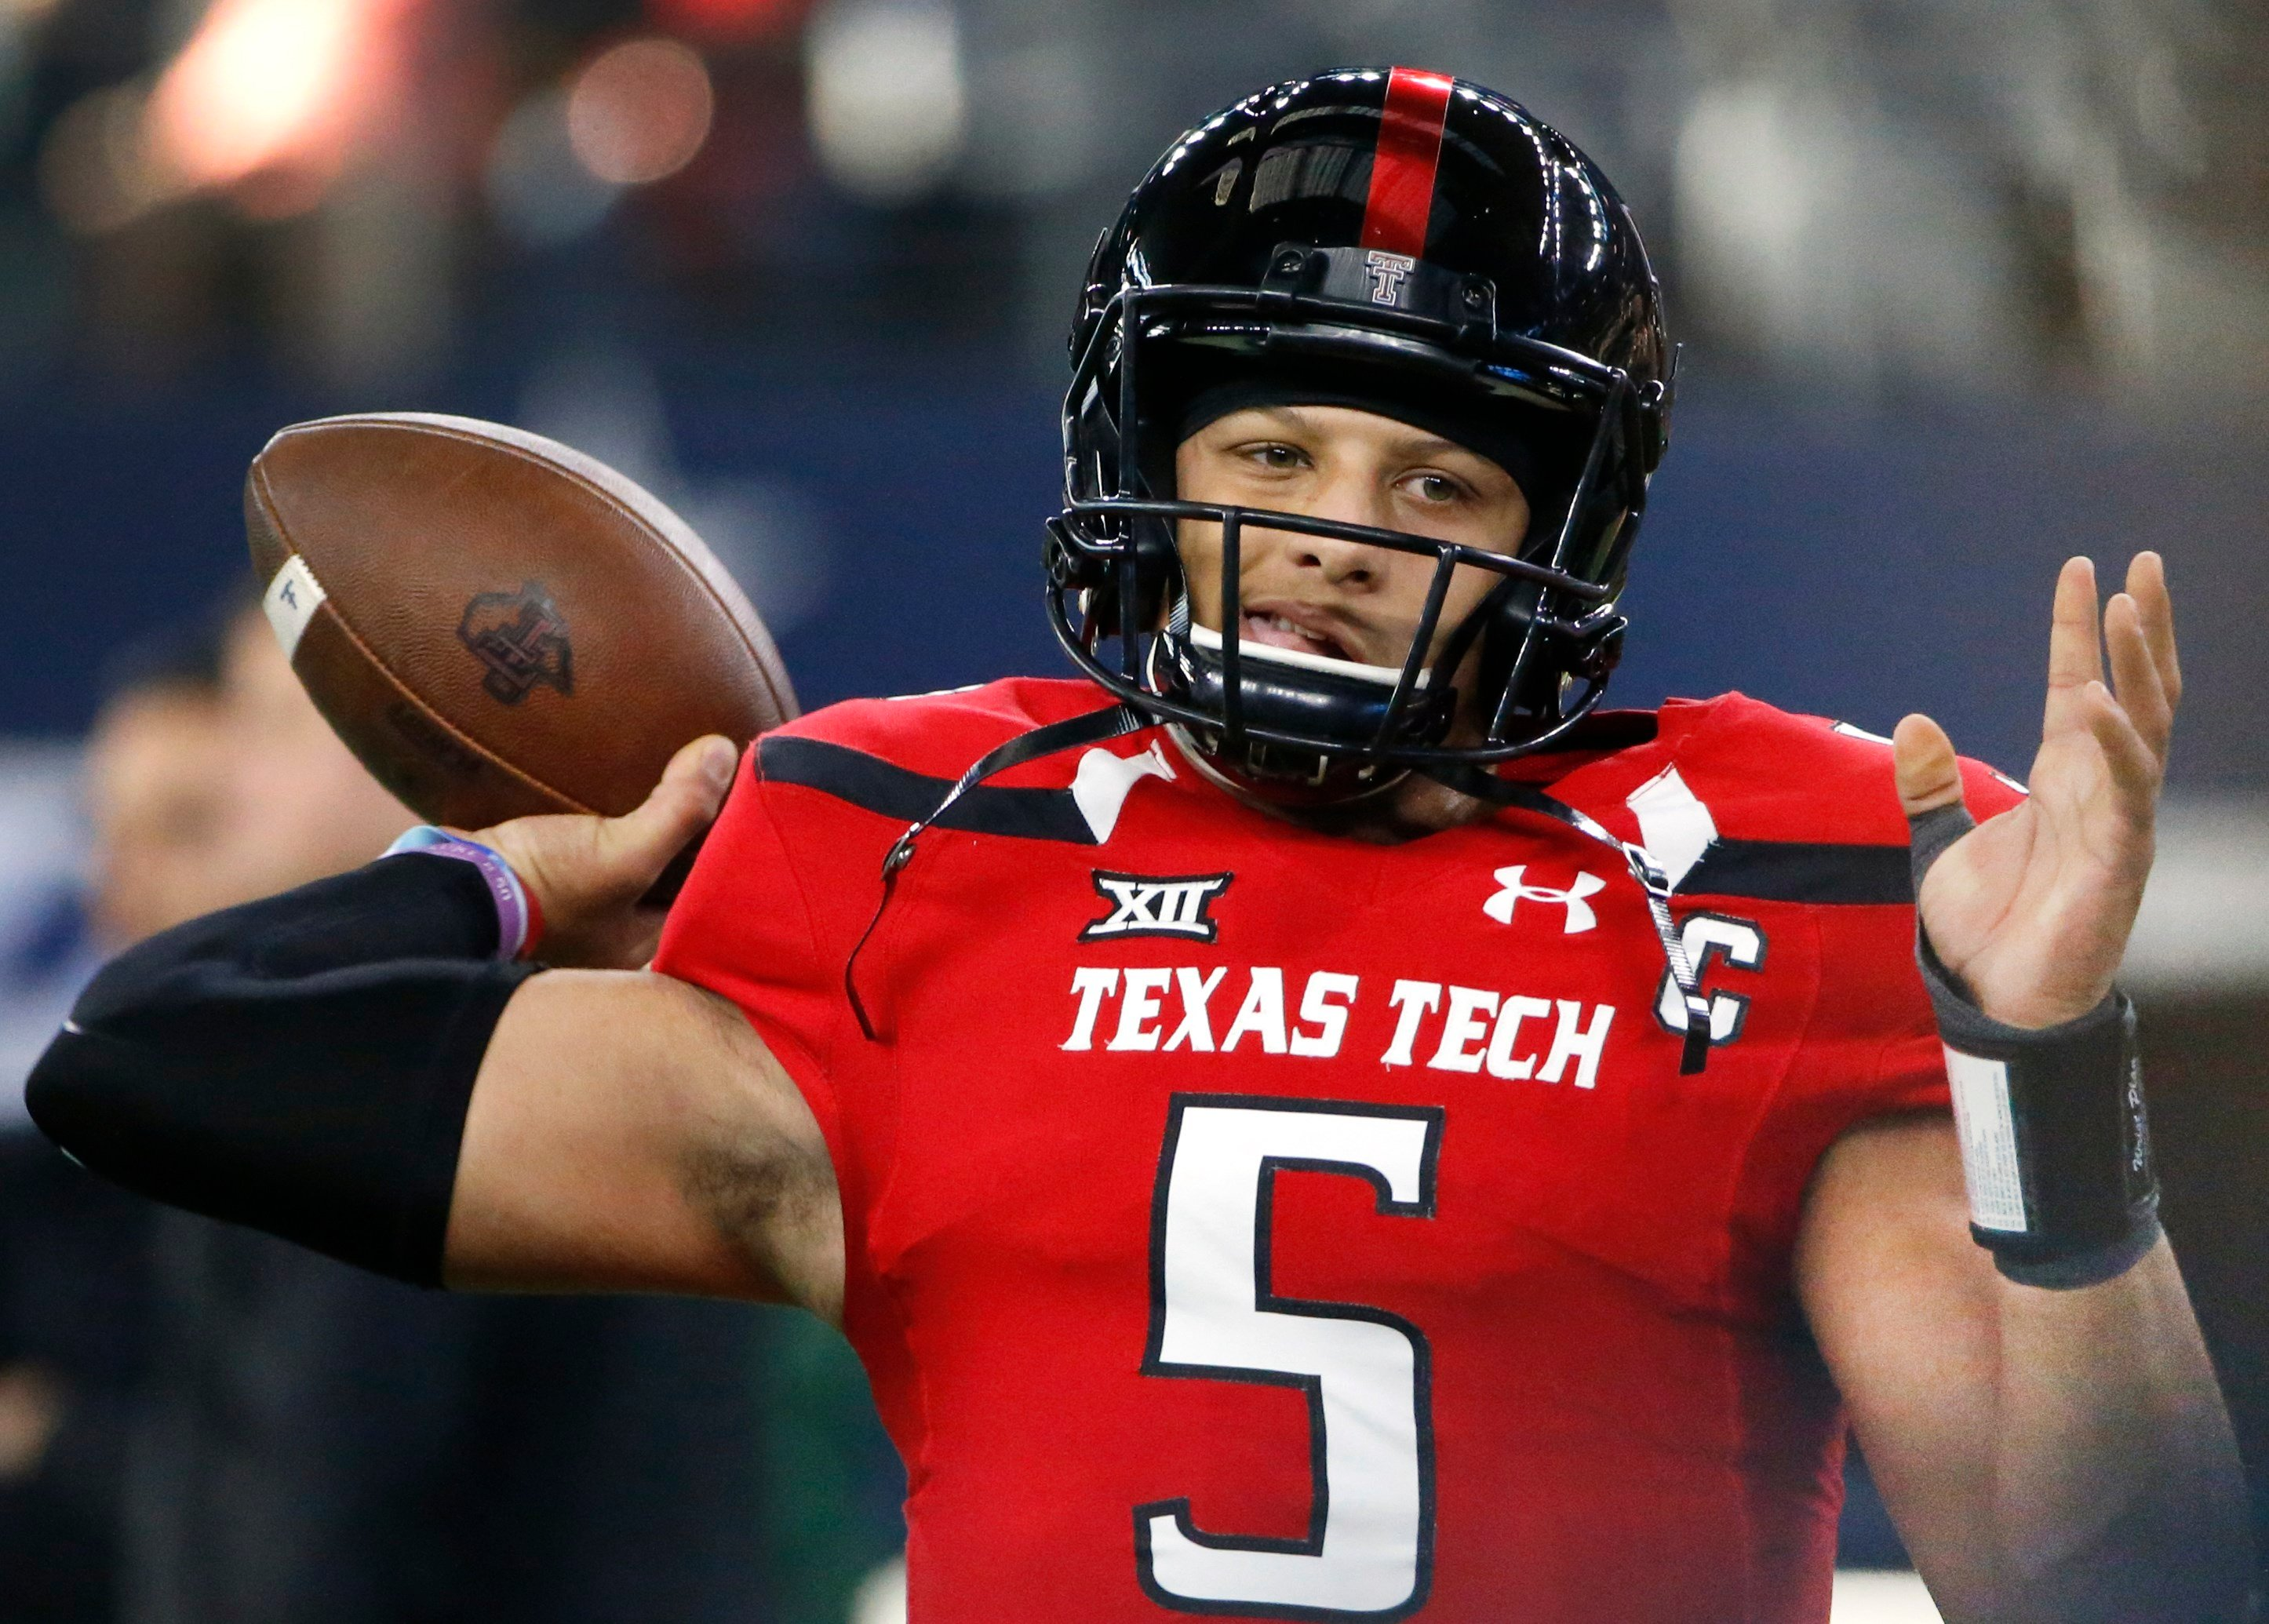 The Kansas City Chiefs traded their first- and third-round picks this year and their first-round pick next year to the Buffalo Bills to grab Texas Tech quarterback Patrick Mahomes with the 10th overall selection. (AP)